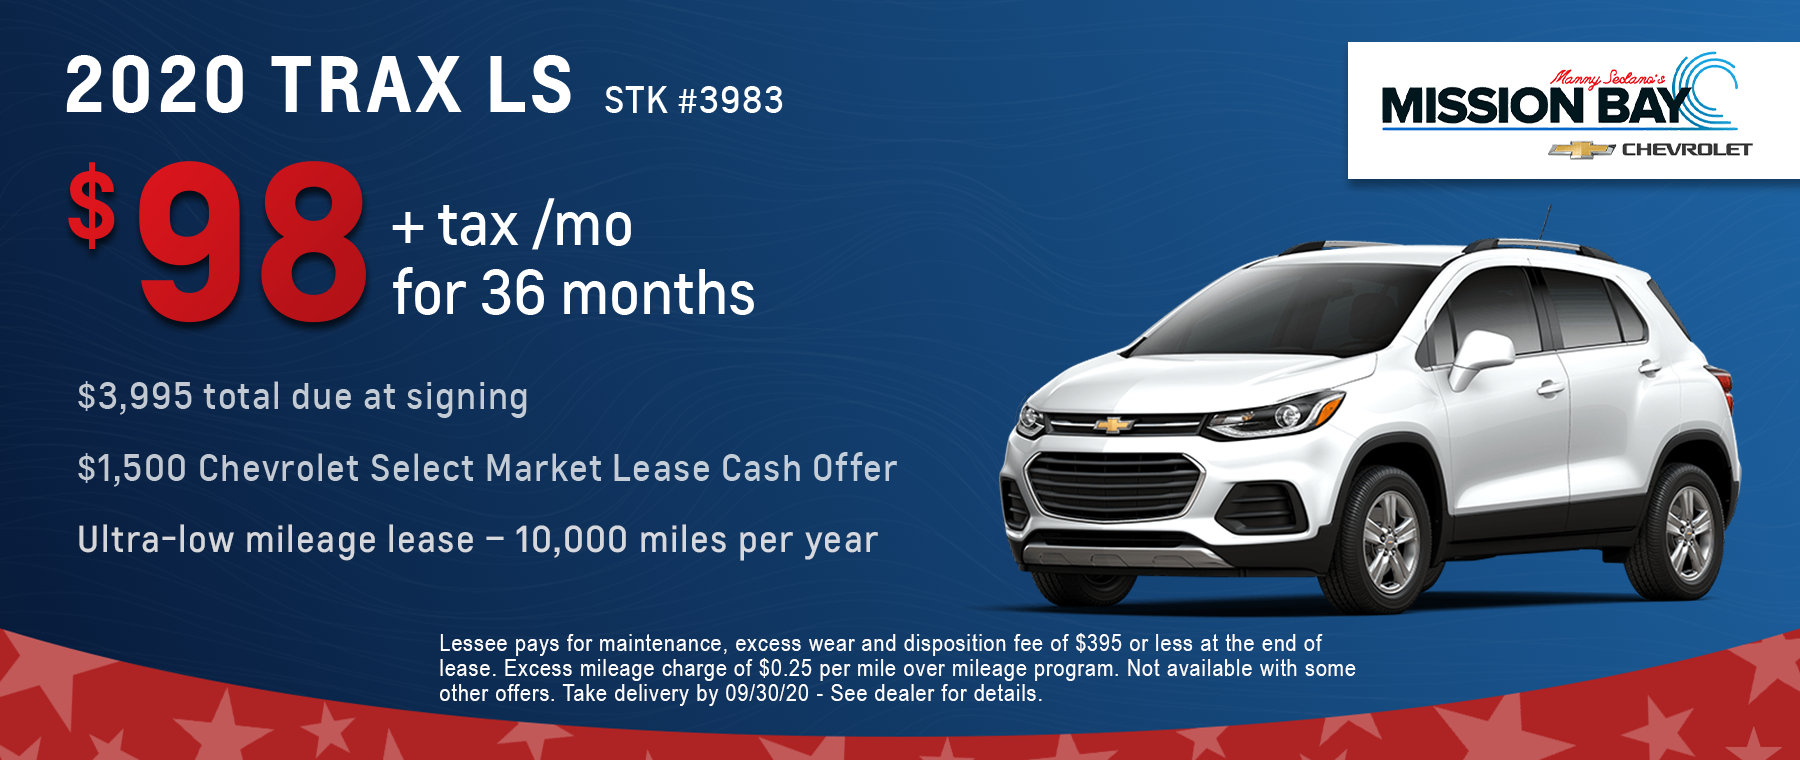 New 2020 Chevy Trax lease deals at San Diego Chevrolet dealership